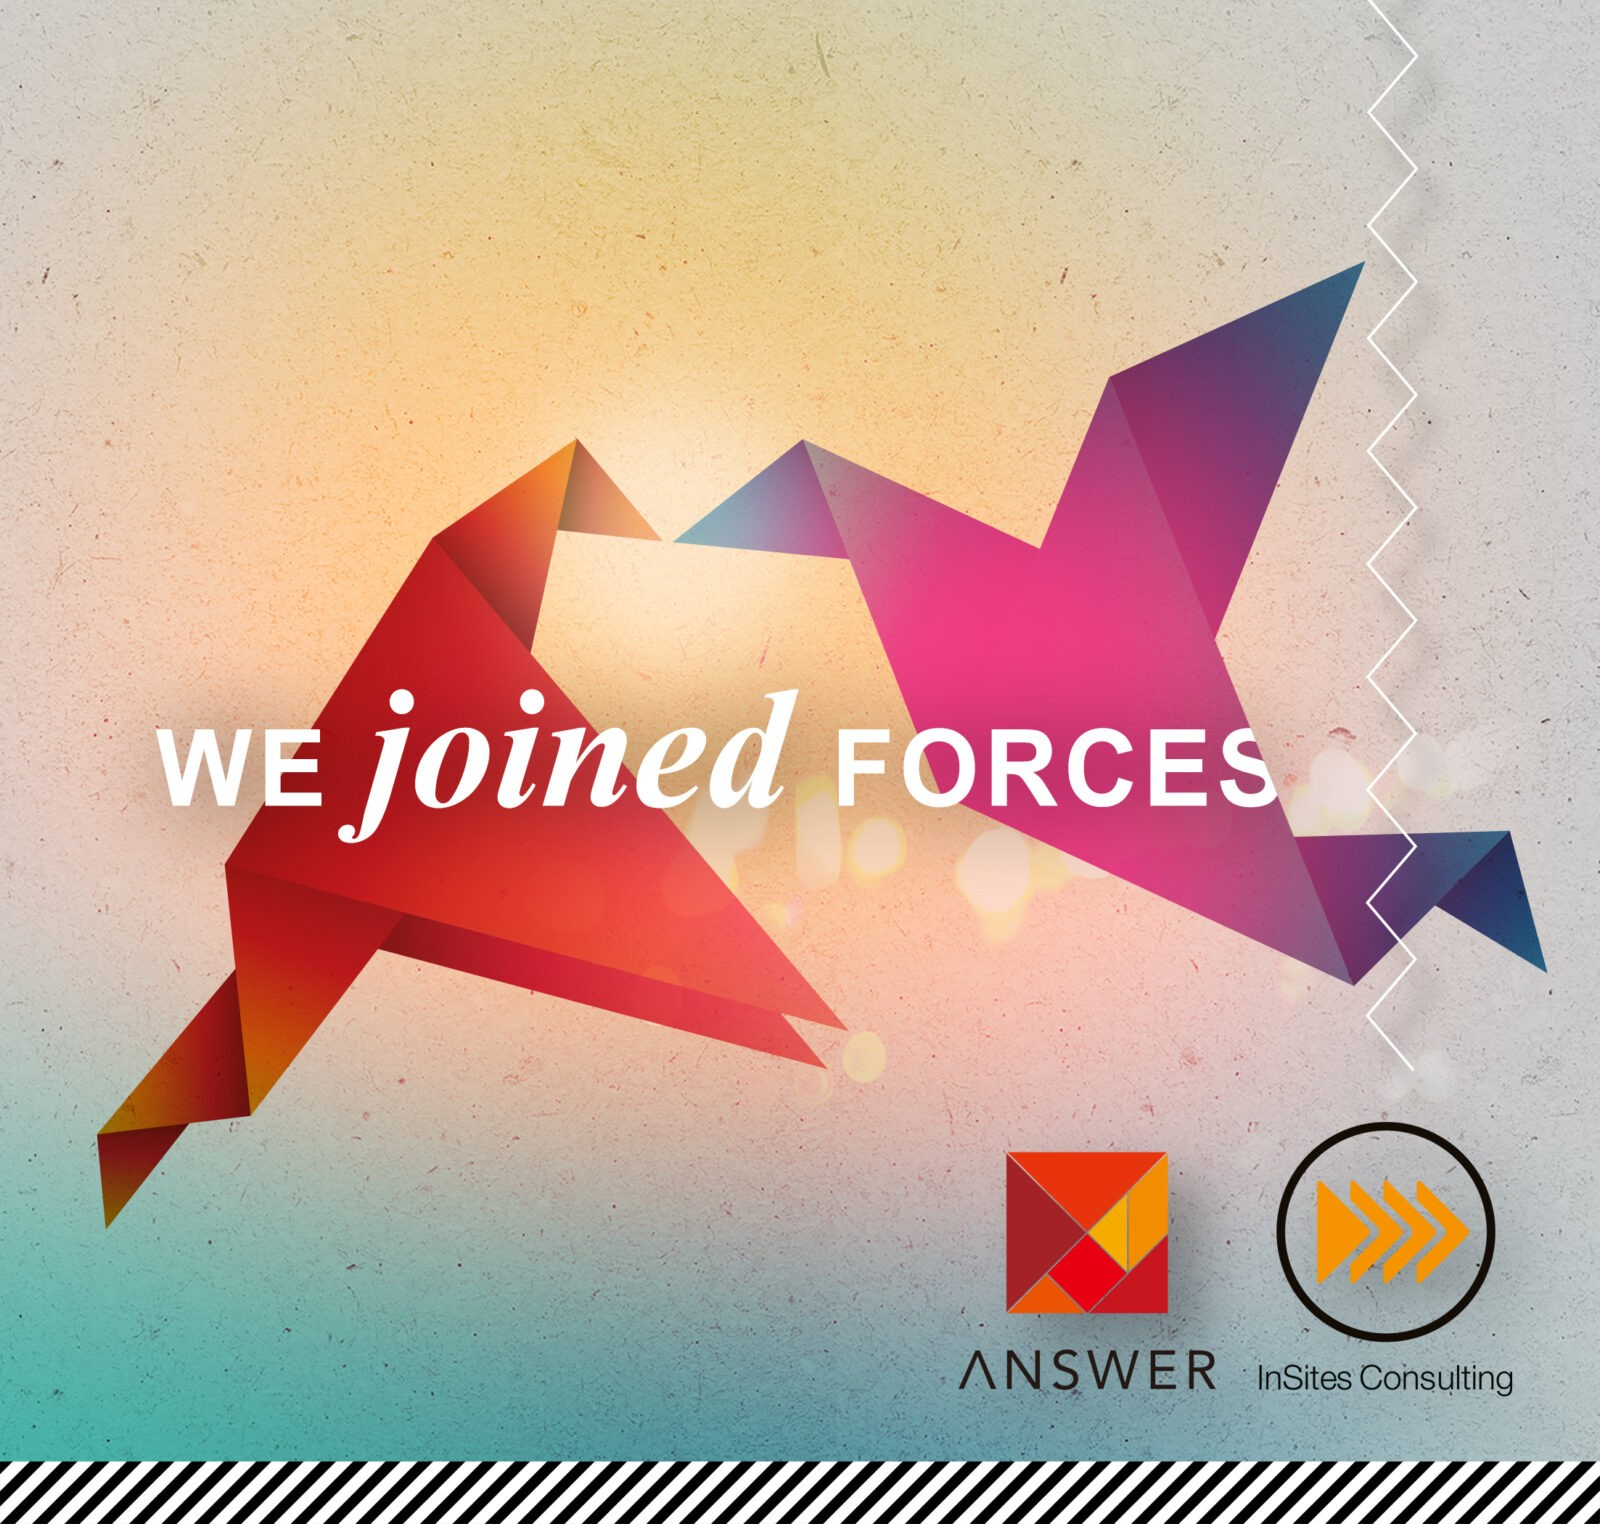 We joined forces - Answer Global InSites Consulting